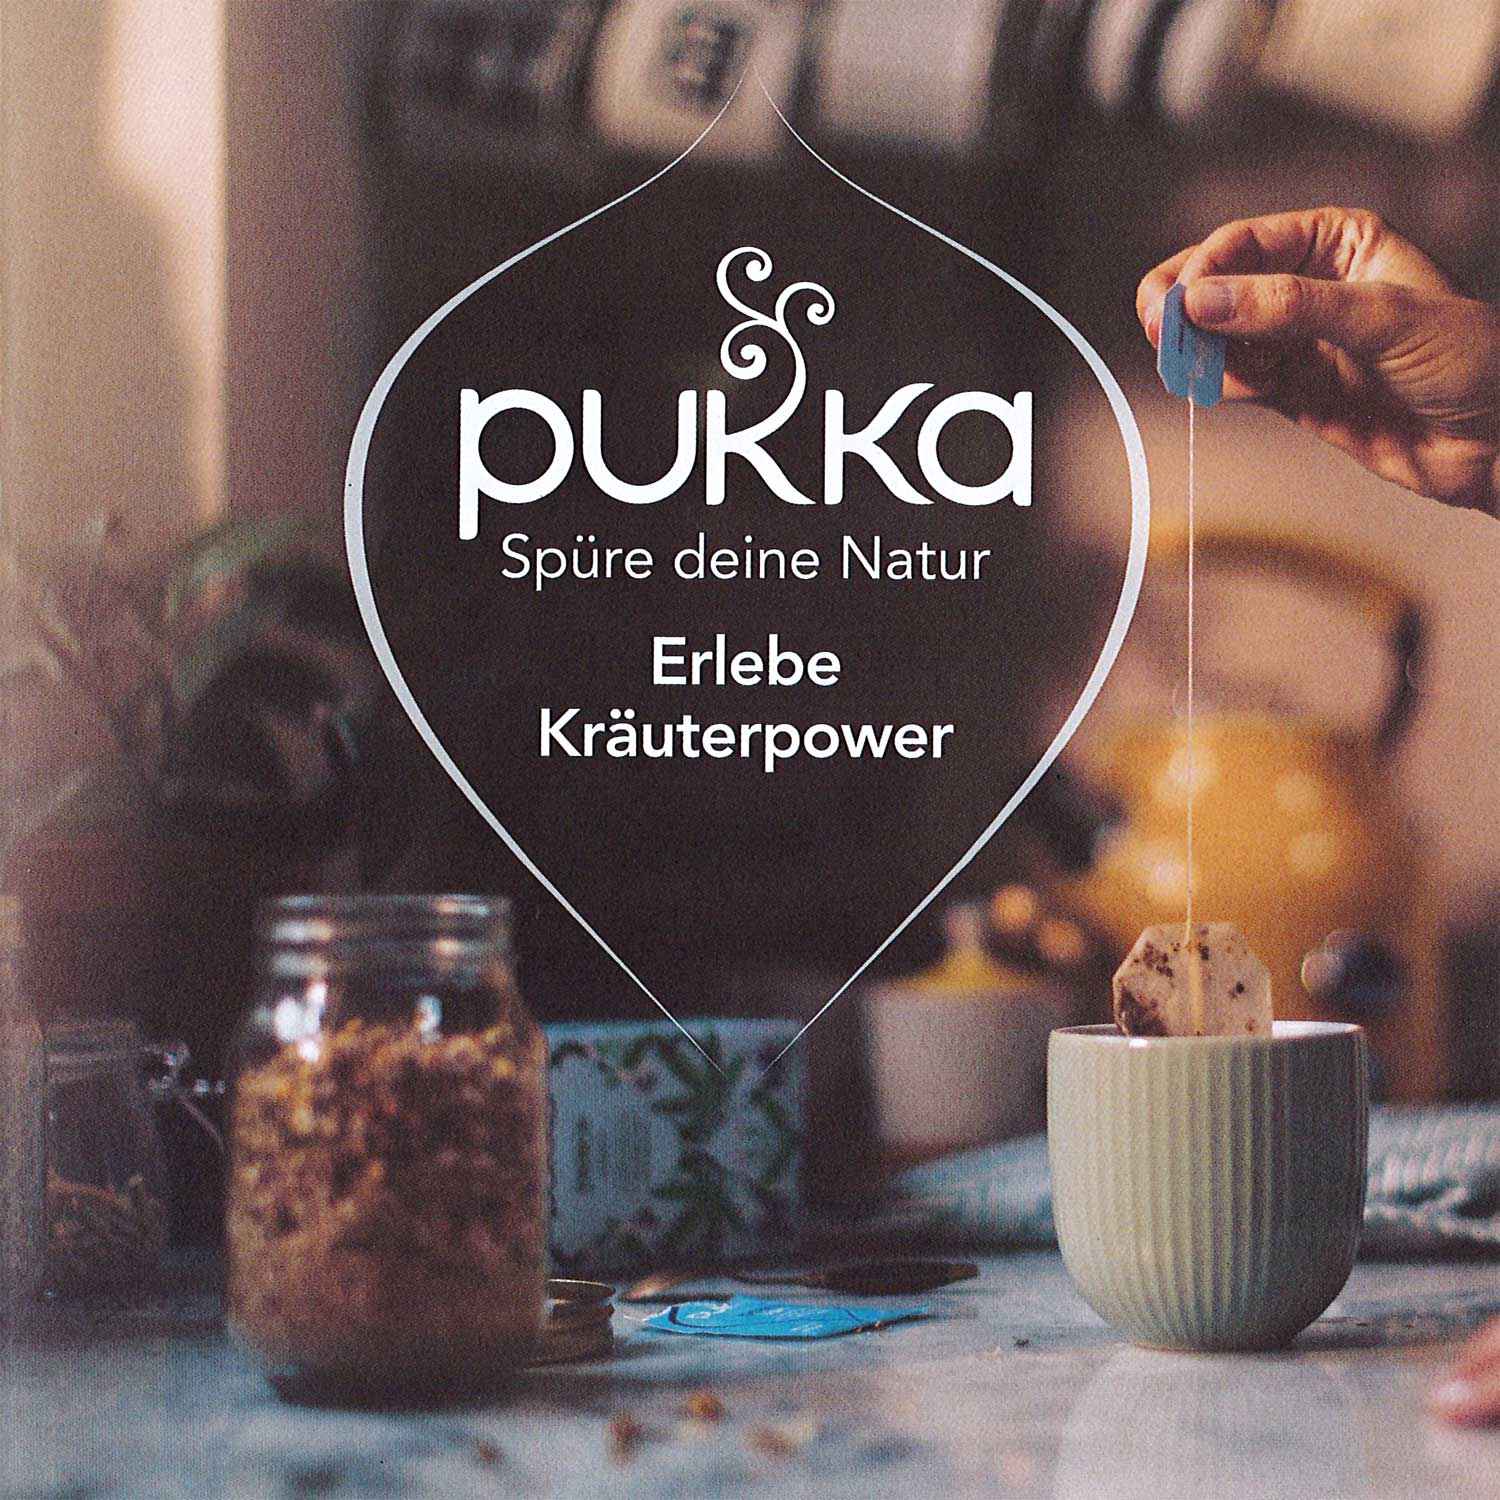 Pukka brochure (all products), free of charge